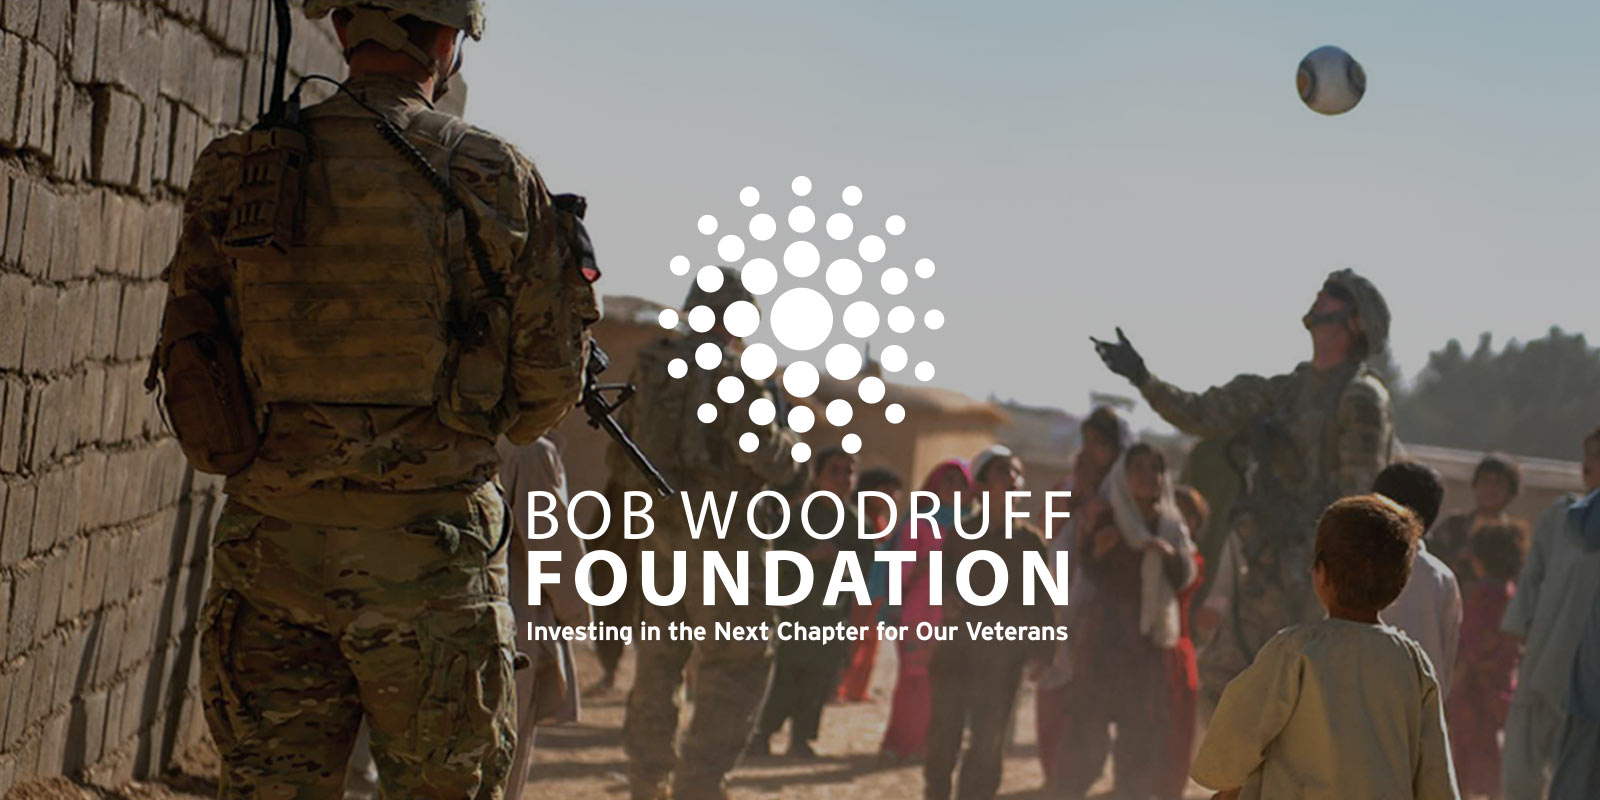 Bob Woodruff Foundation- Investing in the Next Chapter for Our Veterans